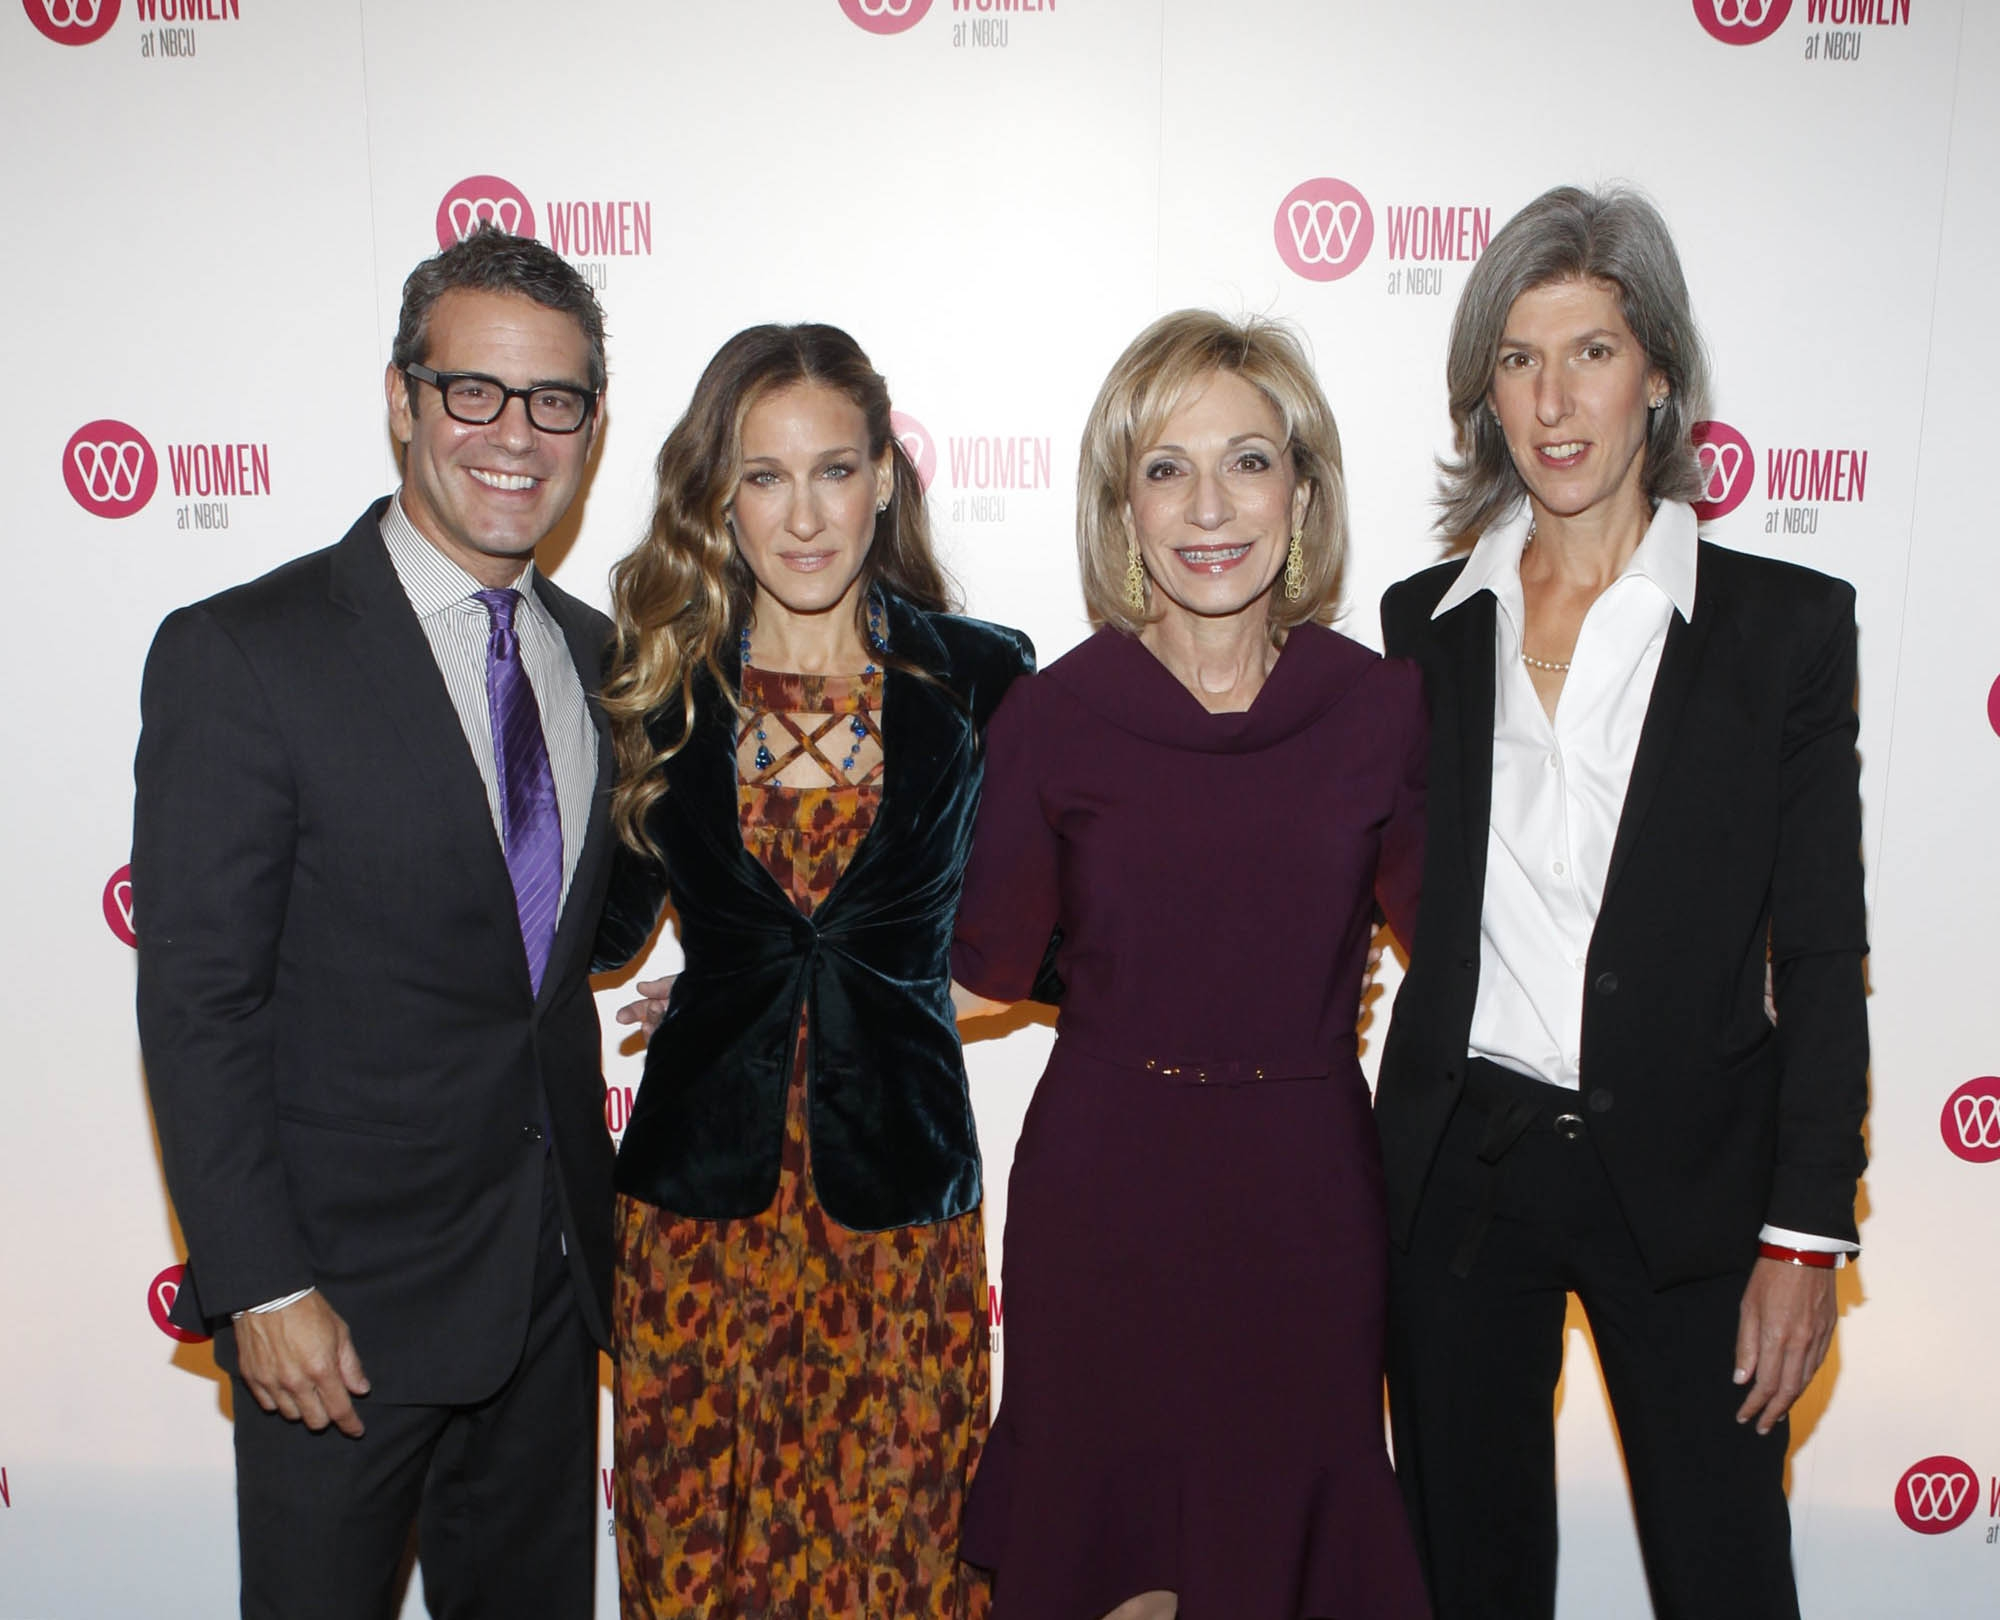 Bravo's Andy Cohen, Sarah Jessica Parker, NBC News' Andrea Mitchell, and NBCU's